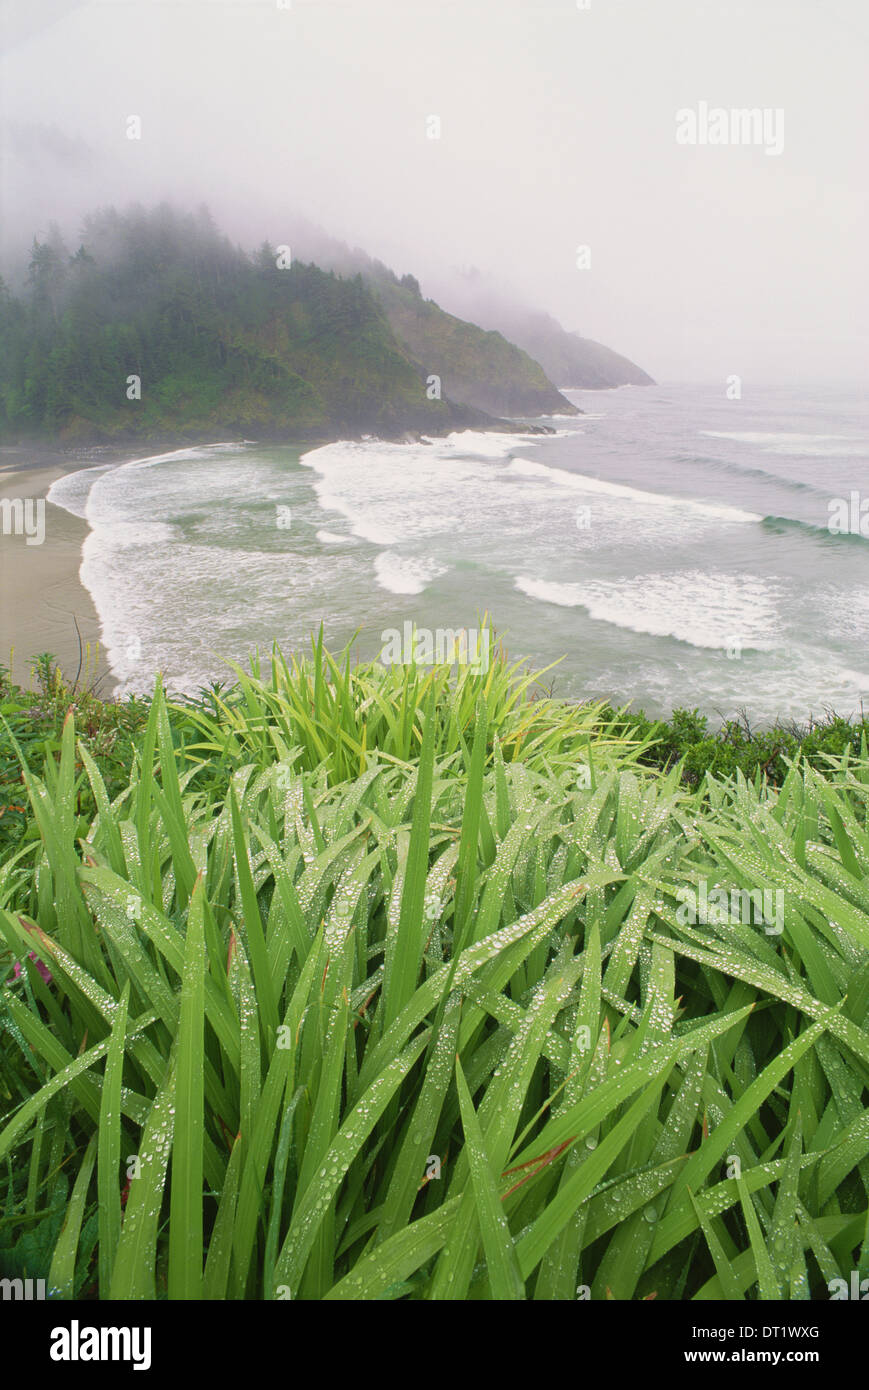 Heceta Head is a headland on the Pacific coastline of Oregon - Stock Image